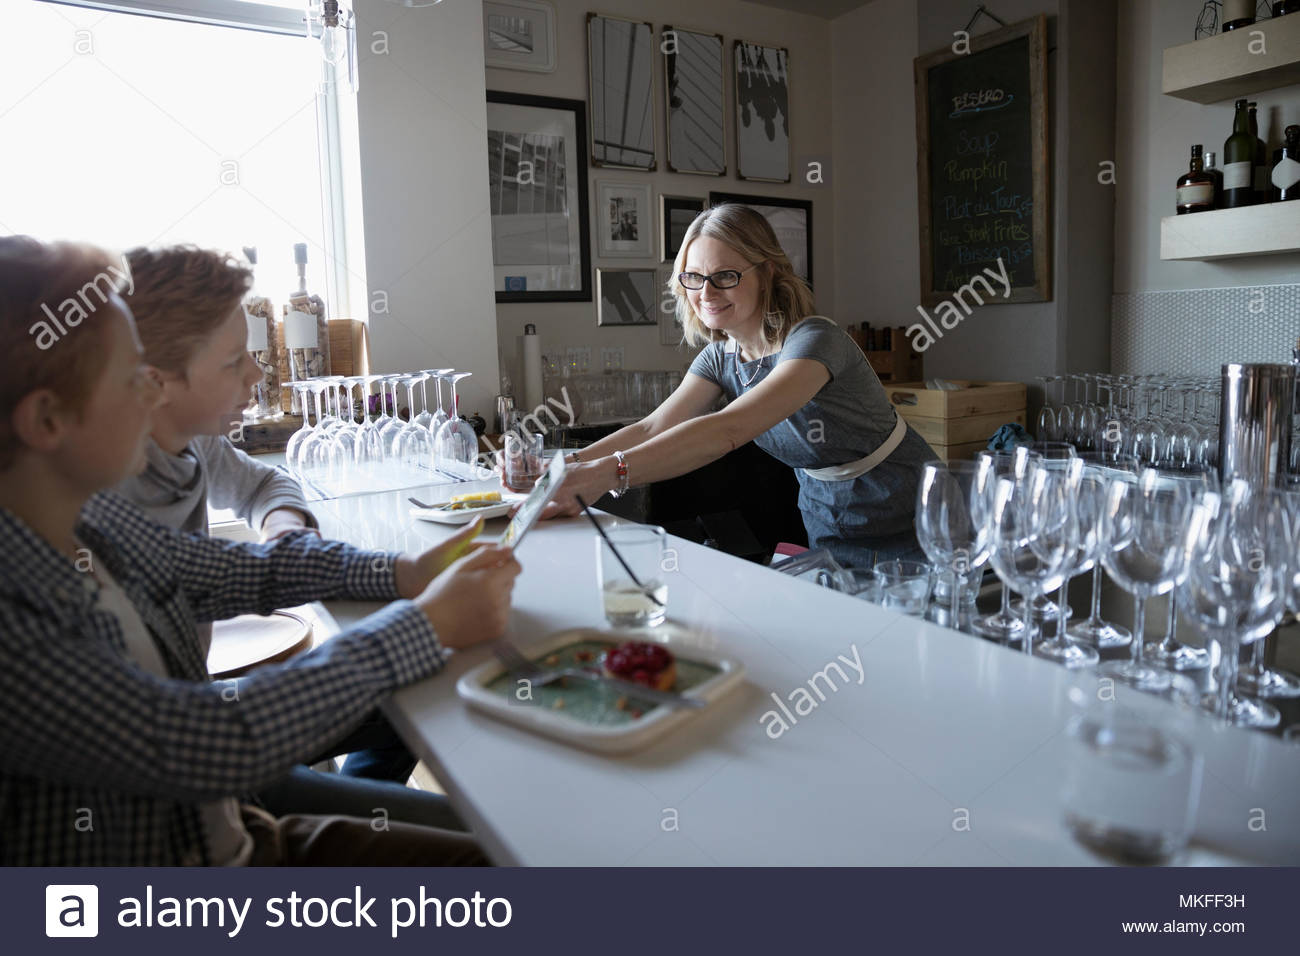 Family business, mother serving food to children at cafe counter - Stock Image